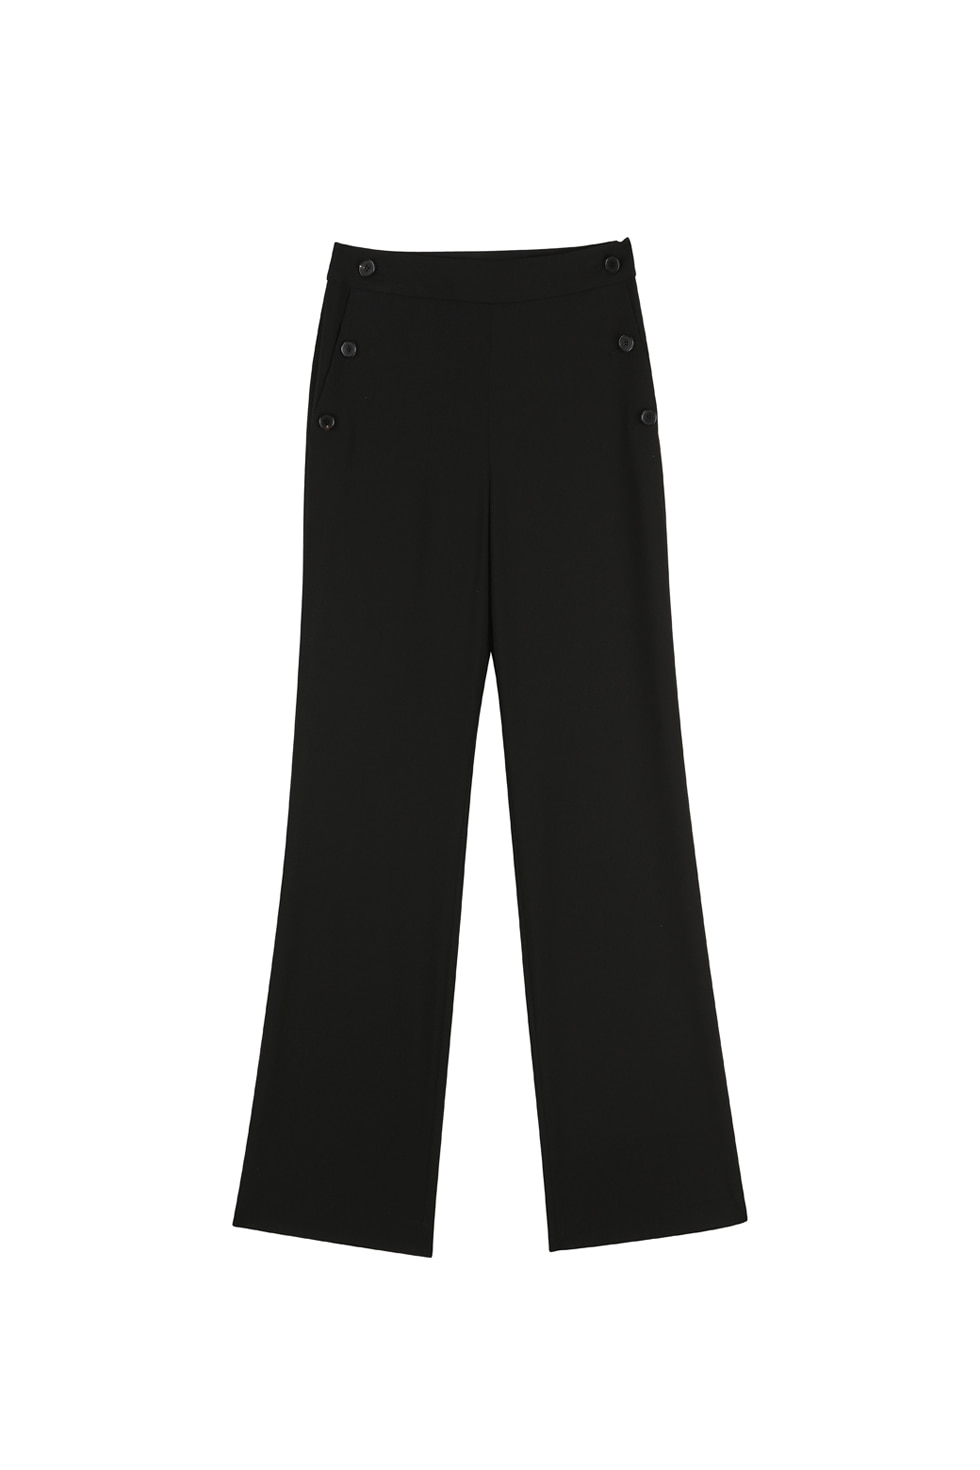 BUTTON STRAIGHT PANTS - BLACK